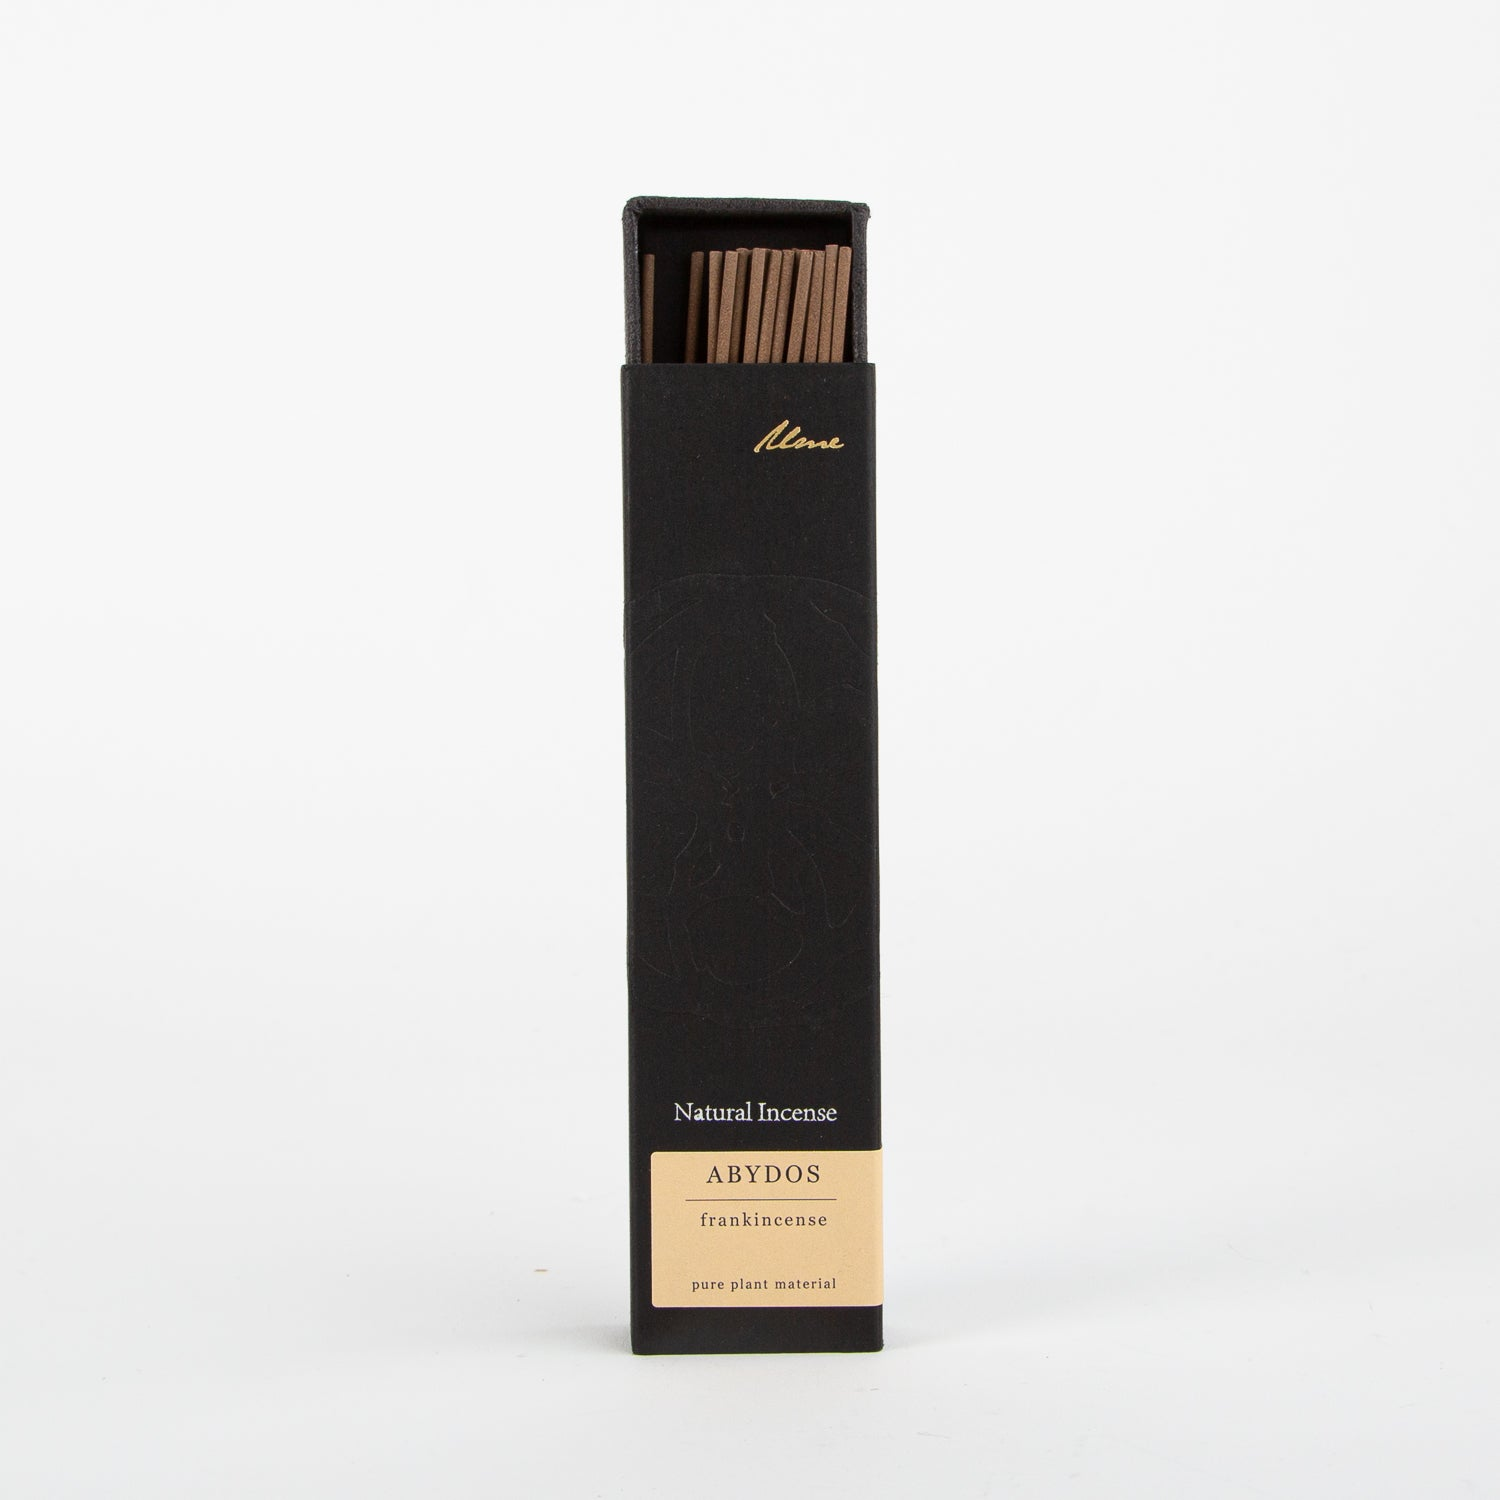 abydos natural incense sticks by Ume collection at Secret Location